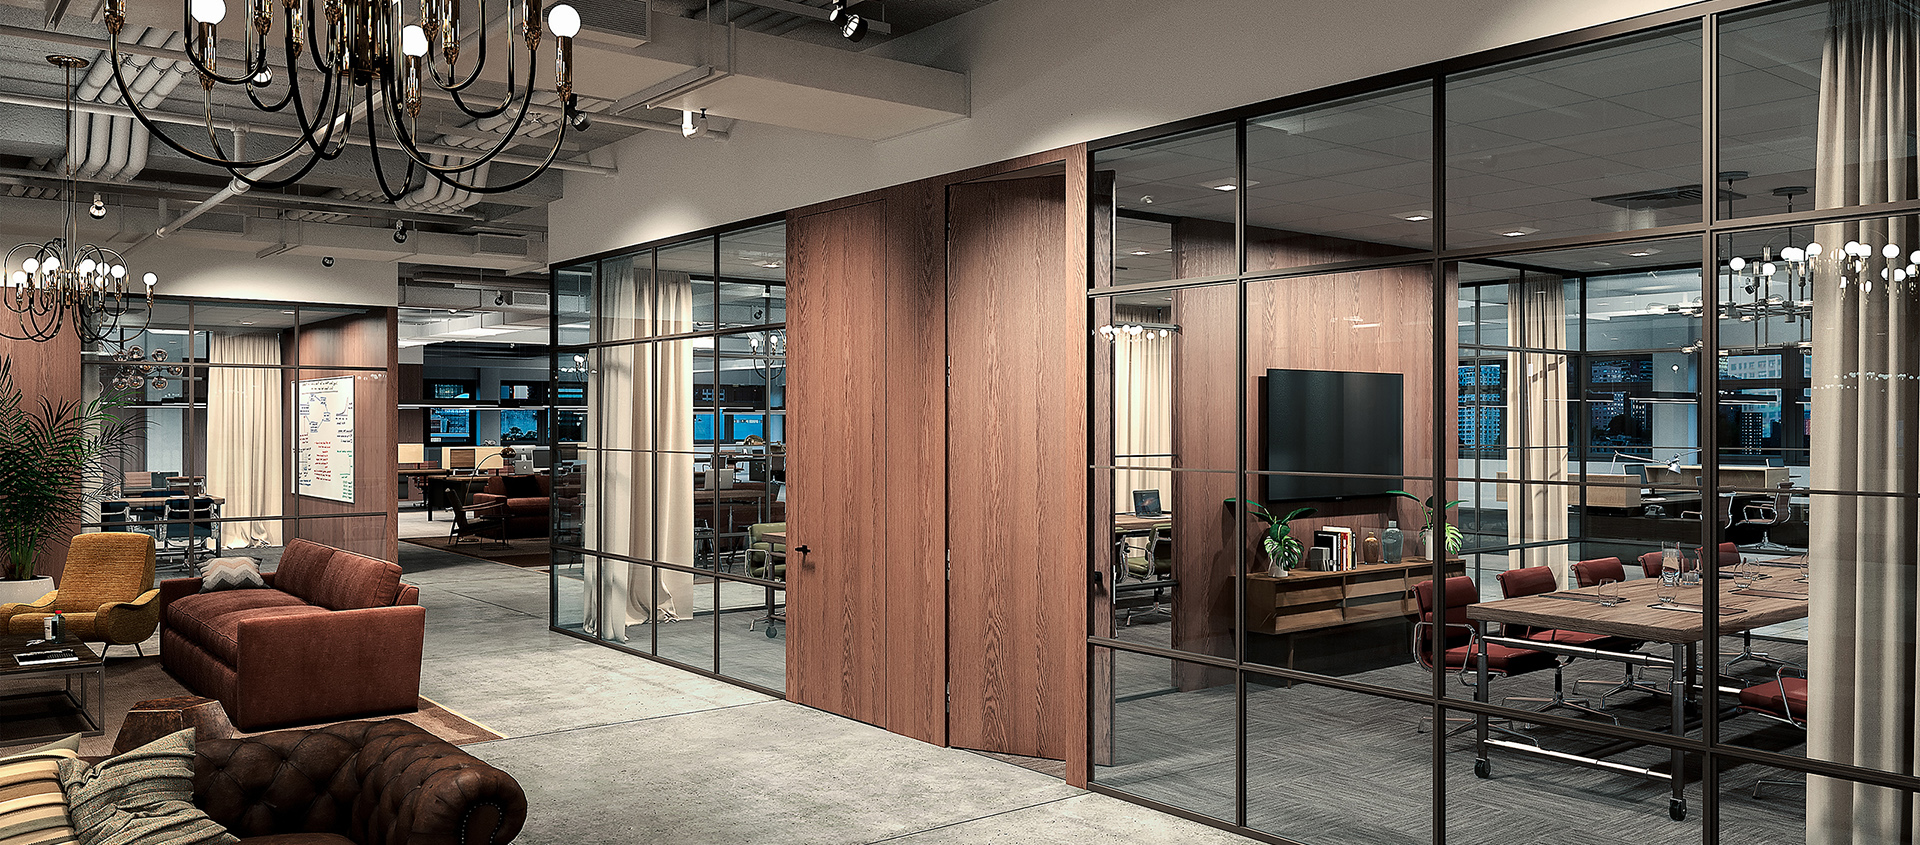 Fimo dark framed glass walls with wood framed doors